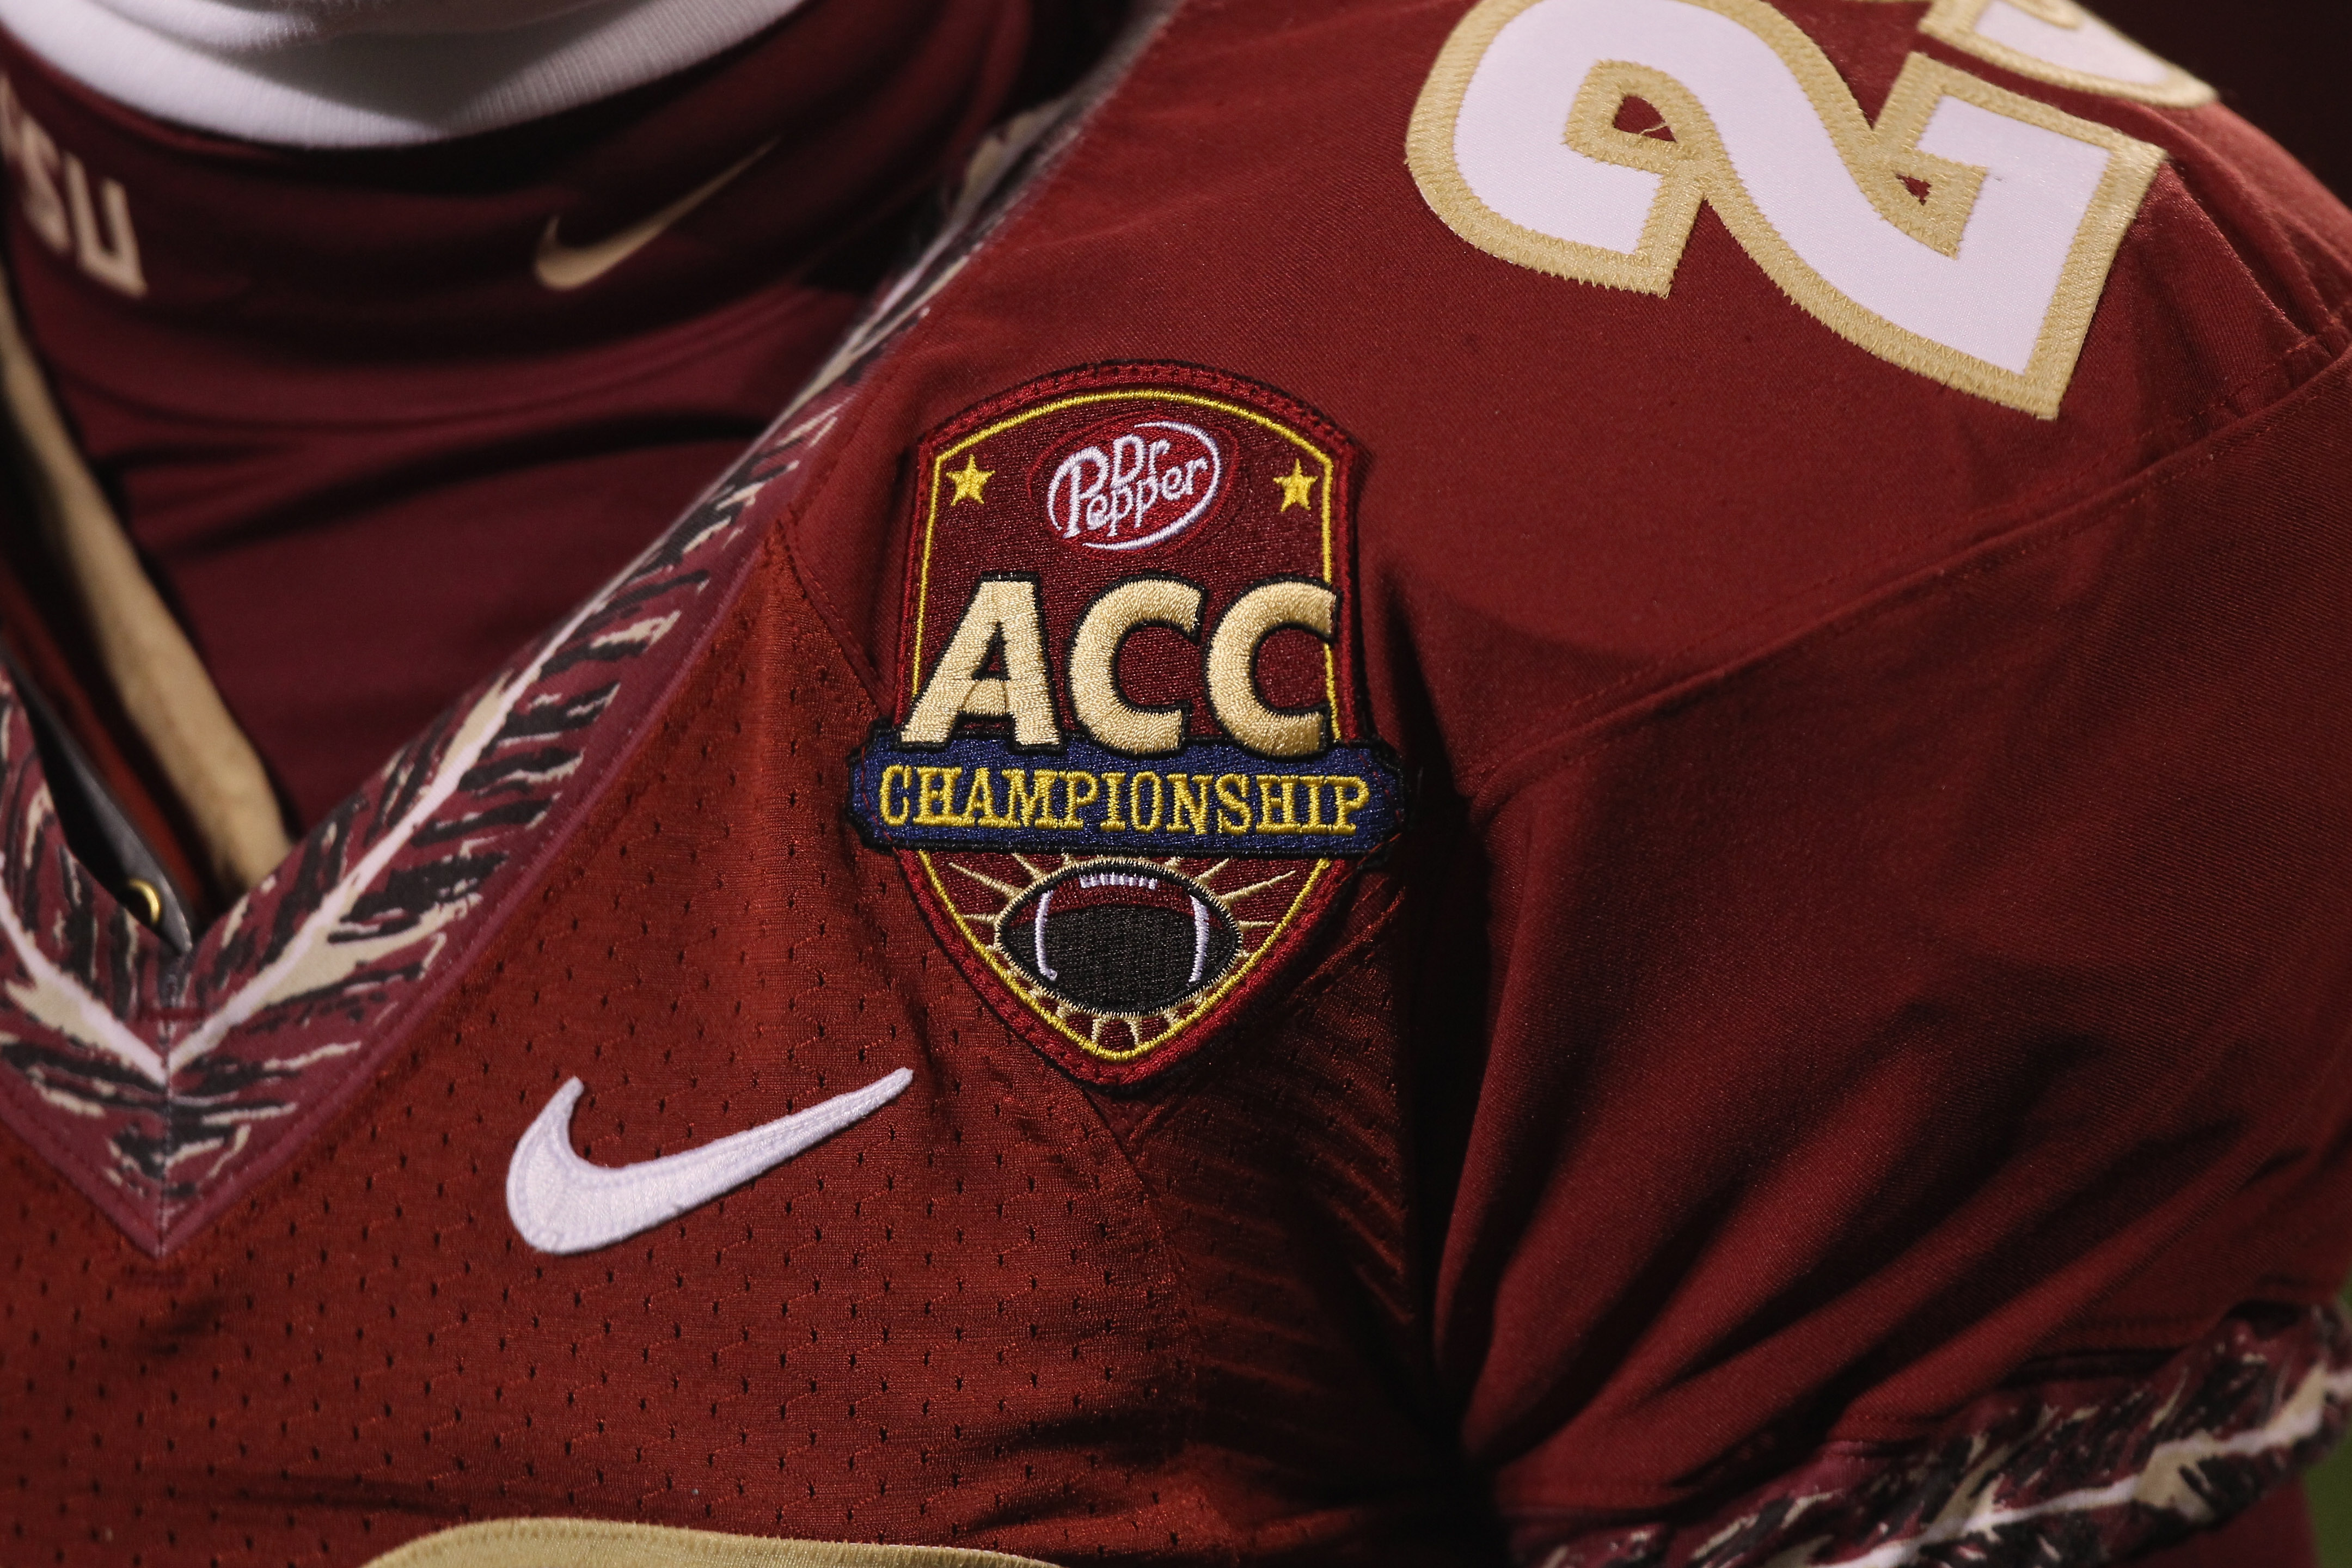 CHARLOTTE, NC - DECEMBER 04:  A logo of the ACC Championship game during the Florida State Seminoles versus Virginia Tech Hokies during their game at Bank of America Stadium on December 4, 2010 in Charlotte, North Carolina.  (Photo by Streeter Lecka/Getty